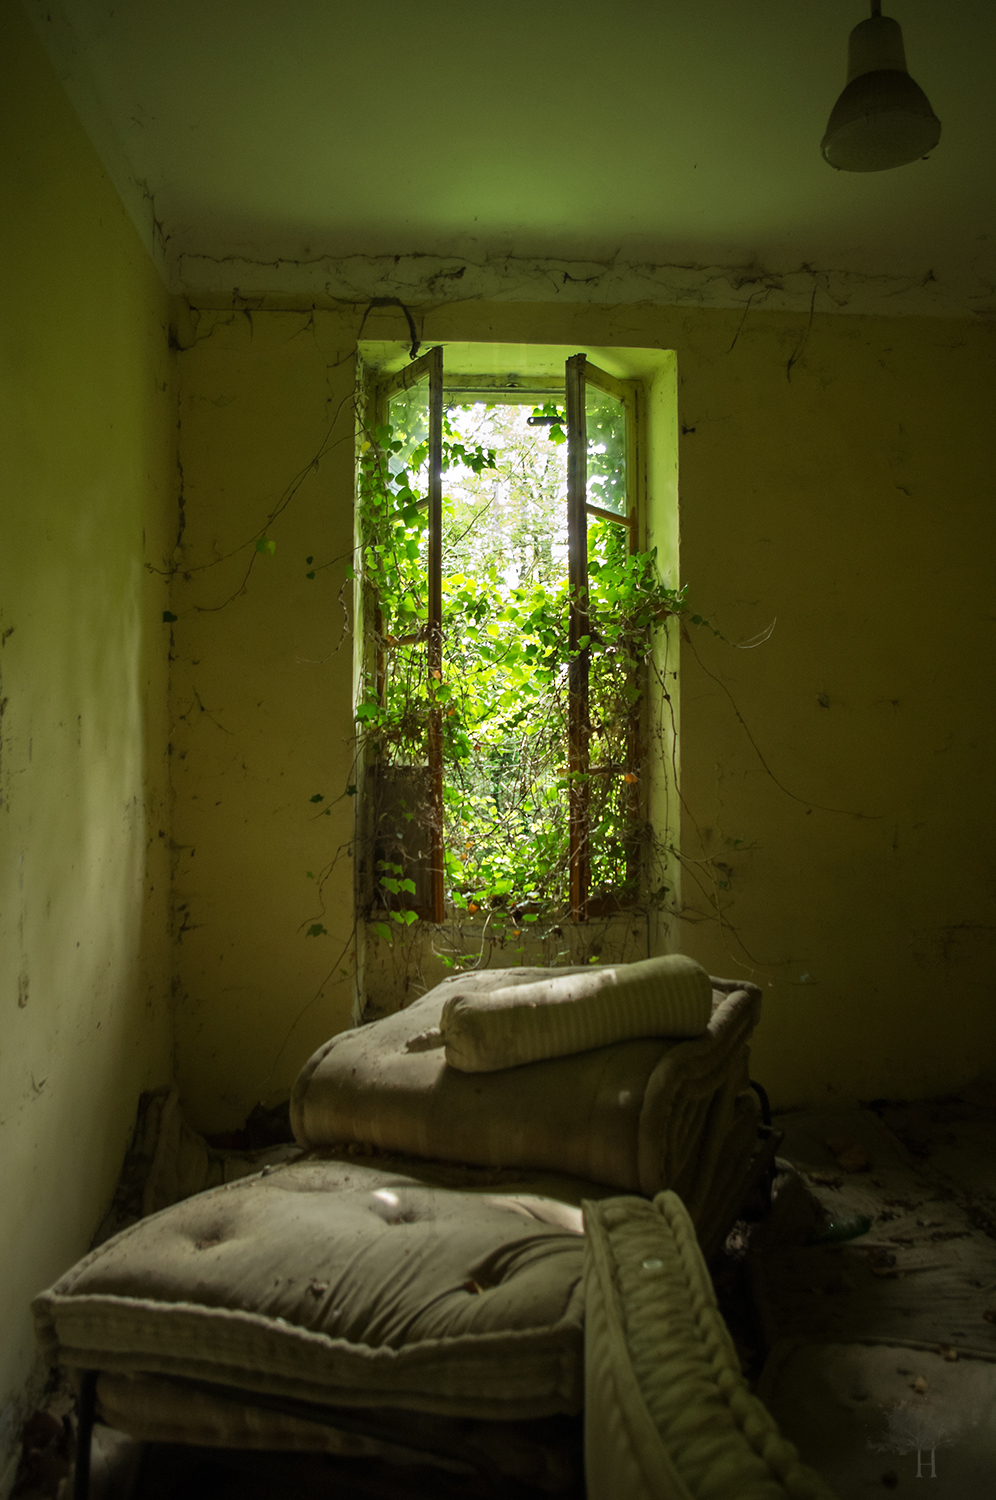 Suspendu la chambre verte by himquare on deviantart for La chambre verte truffaut youtube